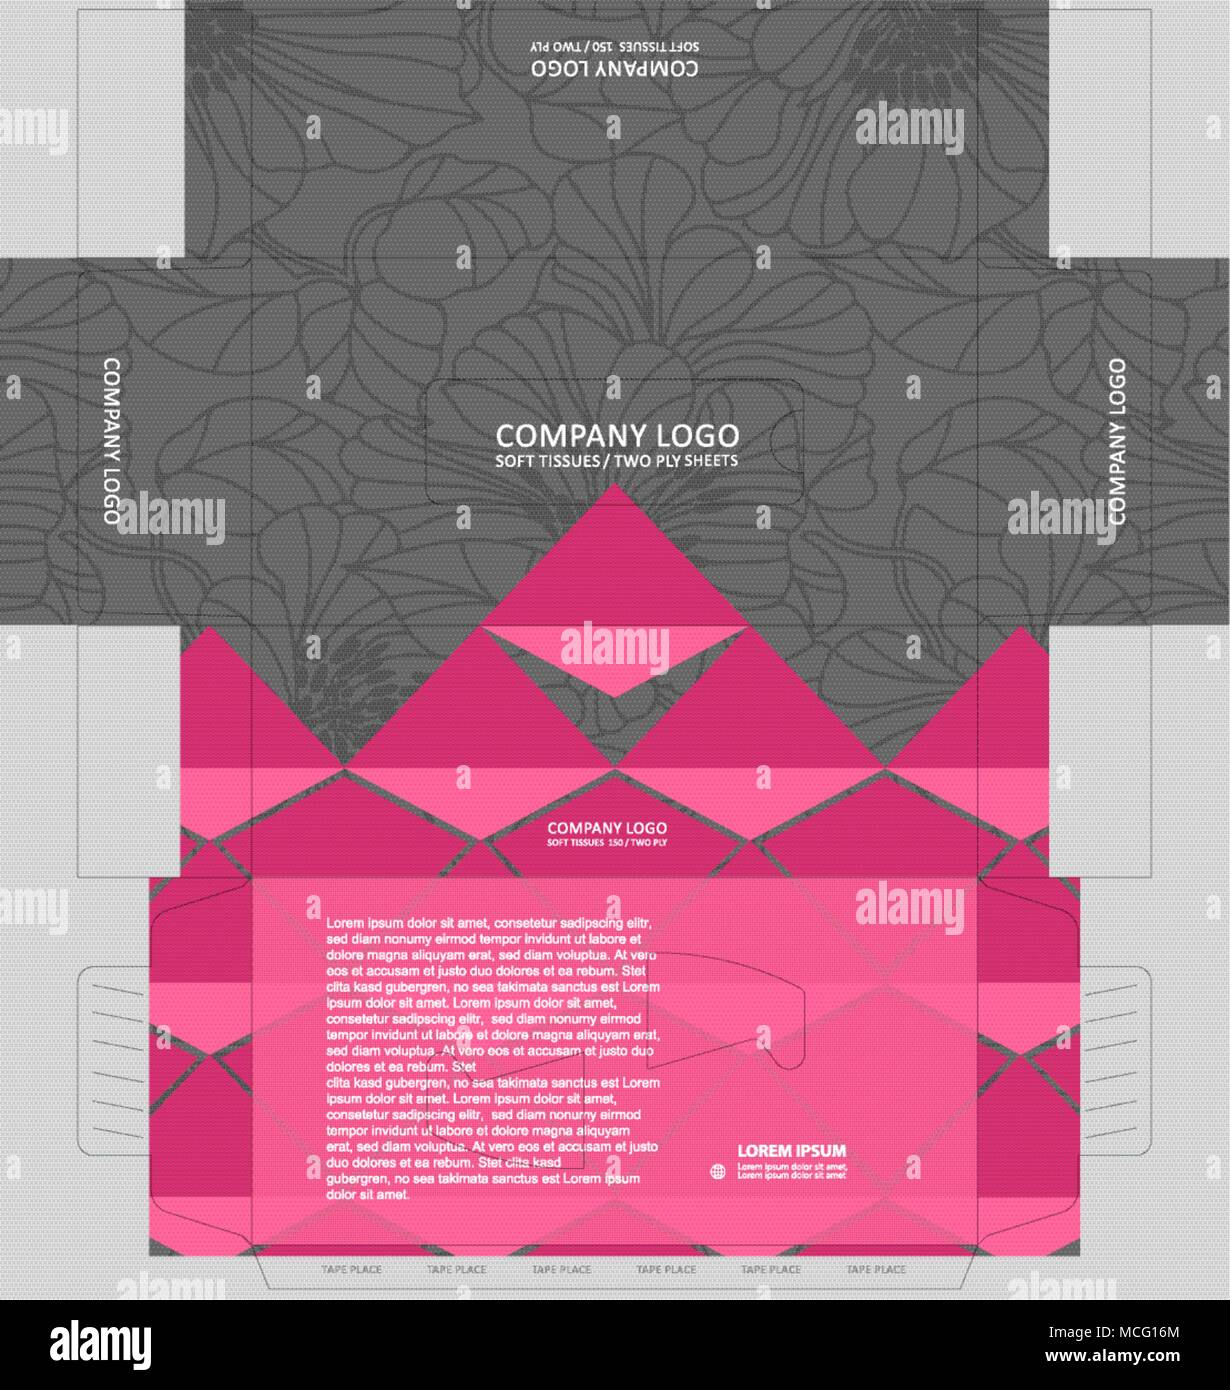 Outline floral pattern on tissue box with pink color accent. Tissue box template concept, template for Business Purpose, Place your text and logos and - Stock Image